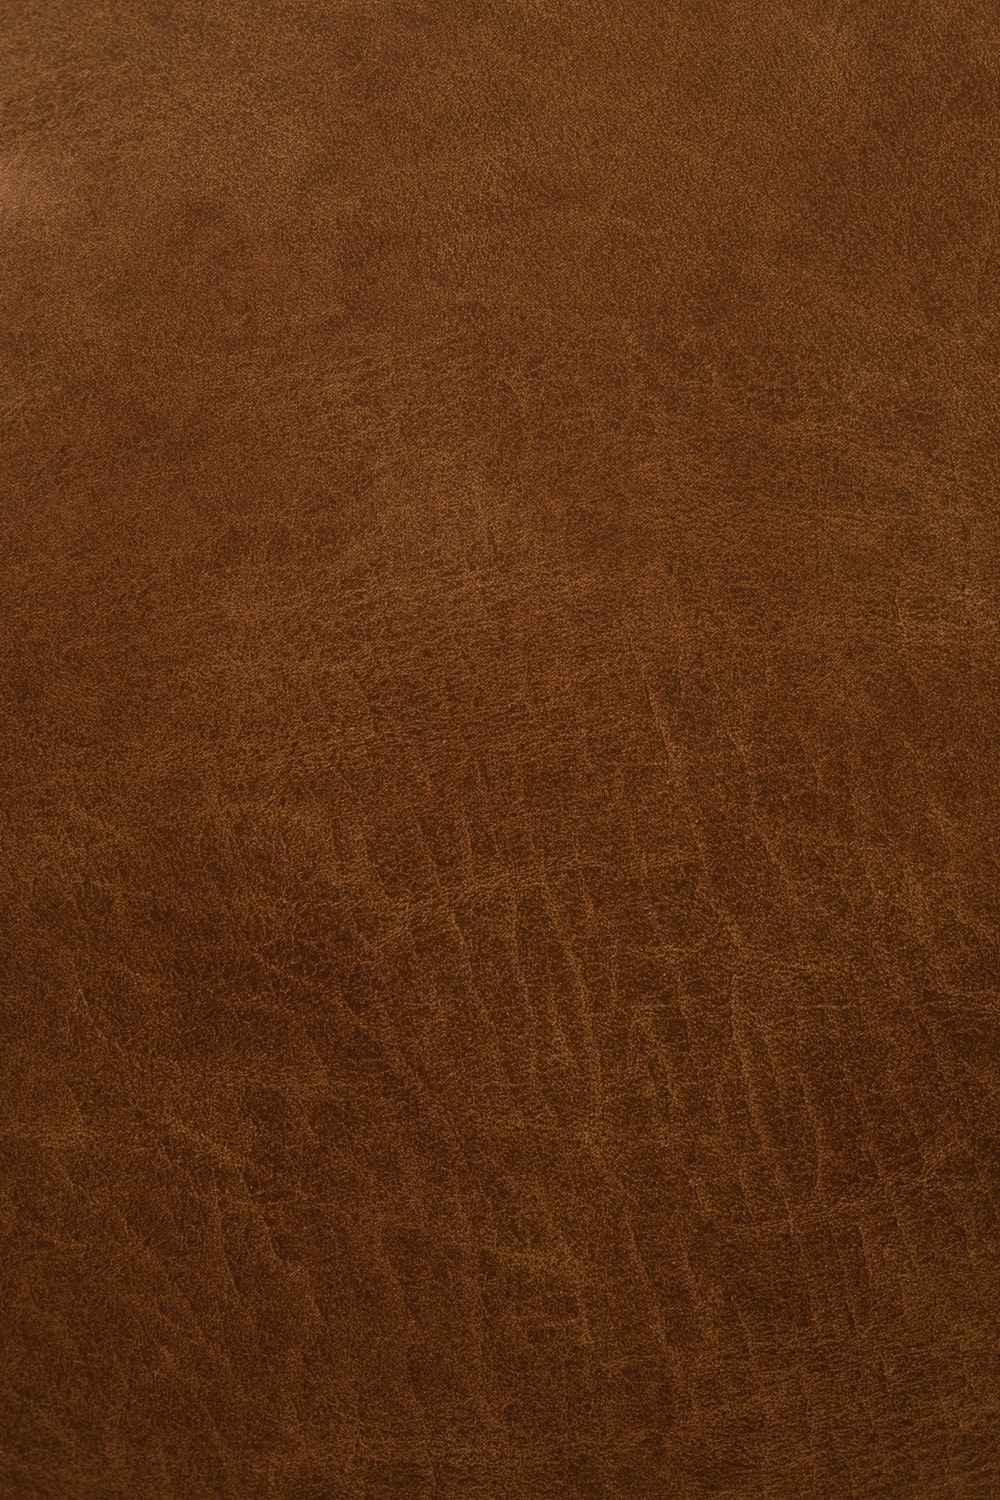 brown leather